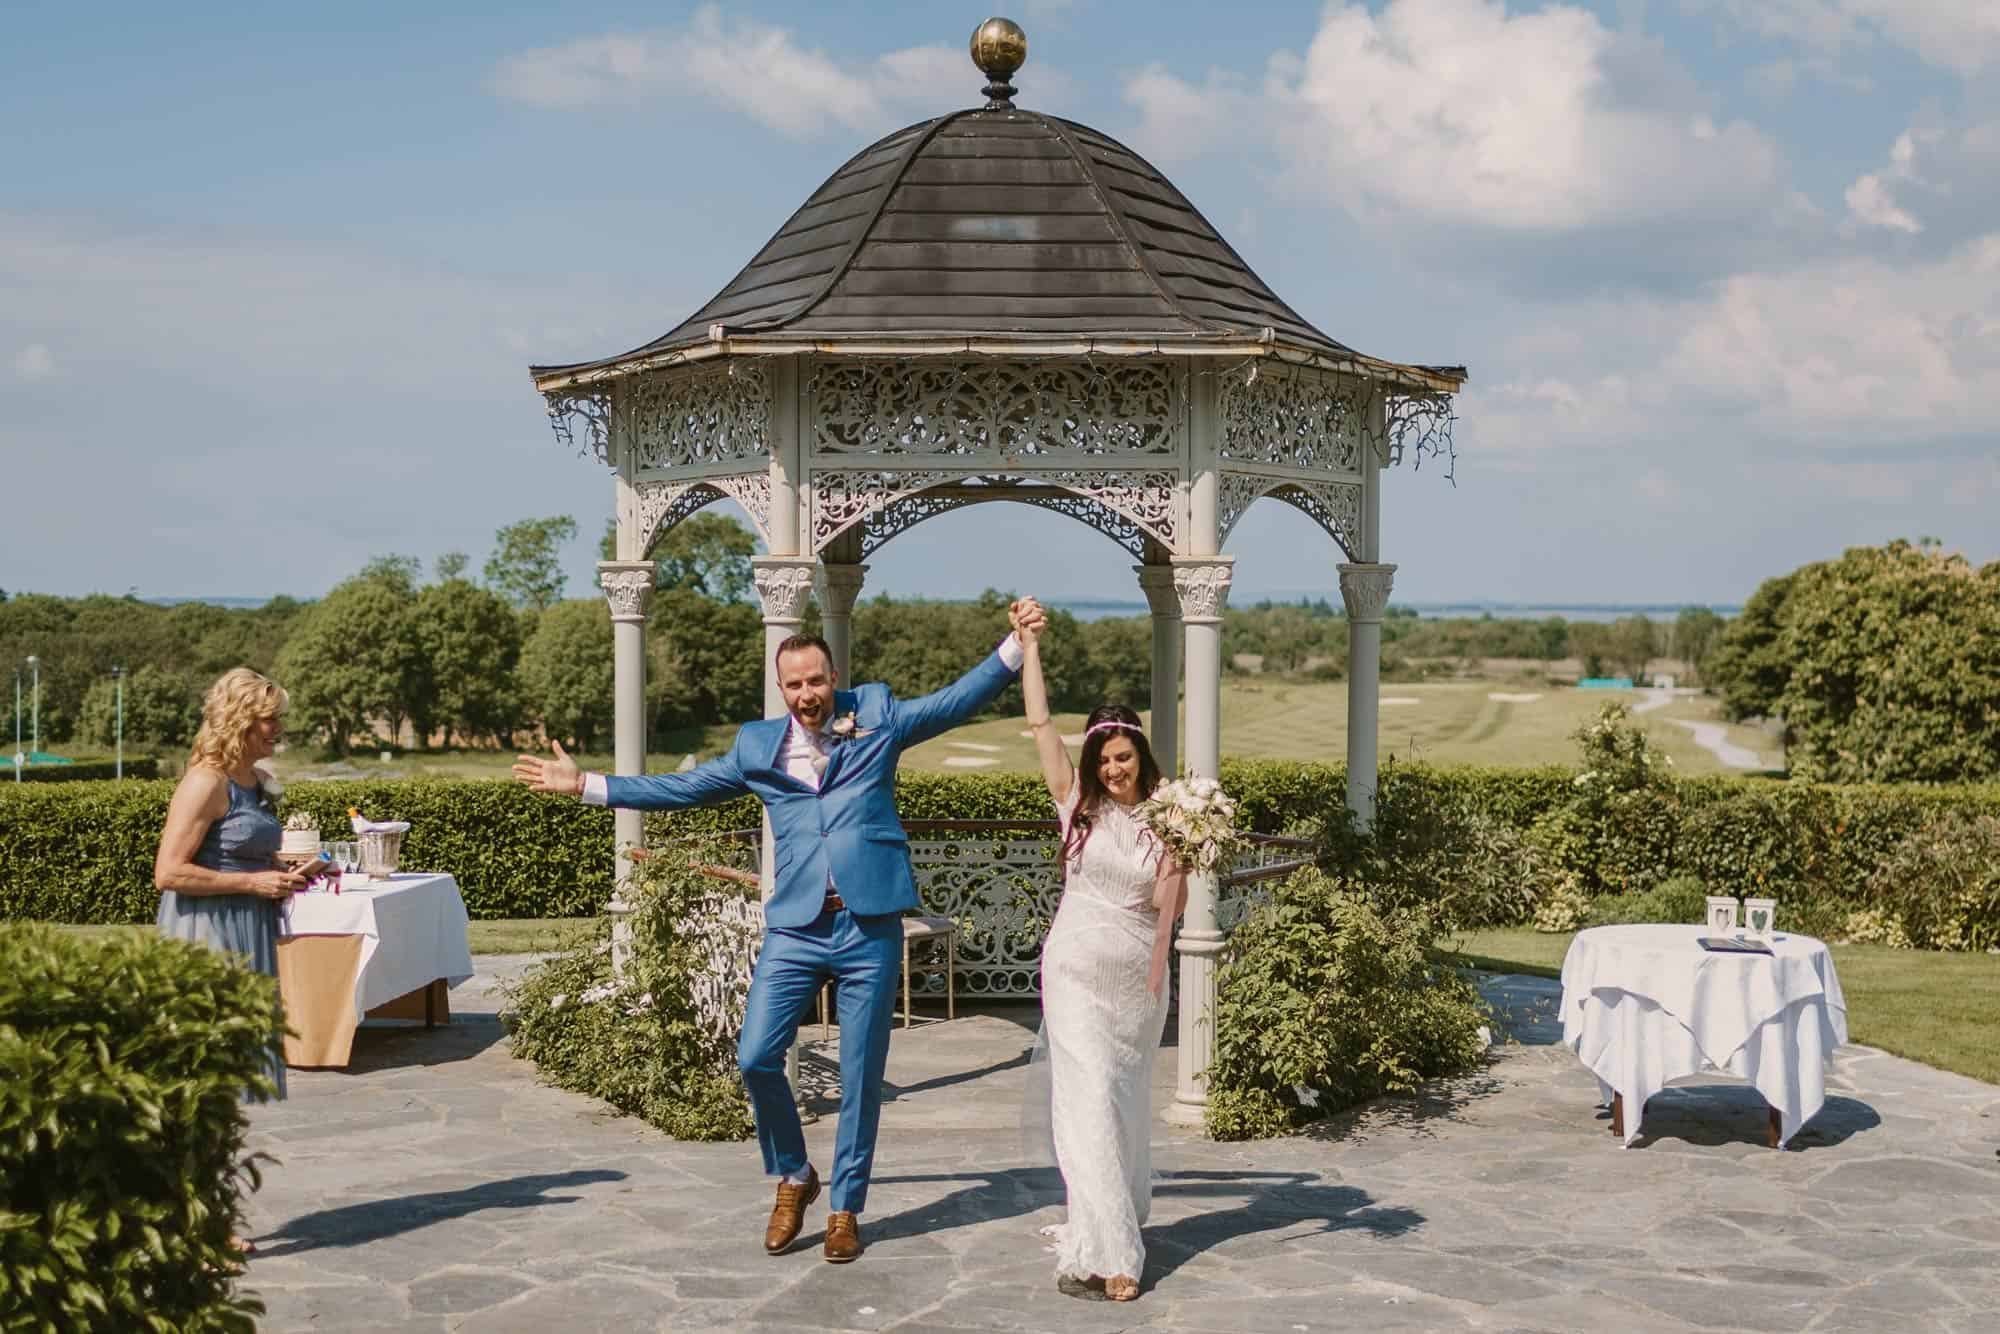 Elopement videographer Ireland, couple cheer with arms in the air